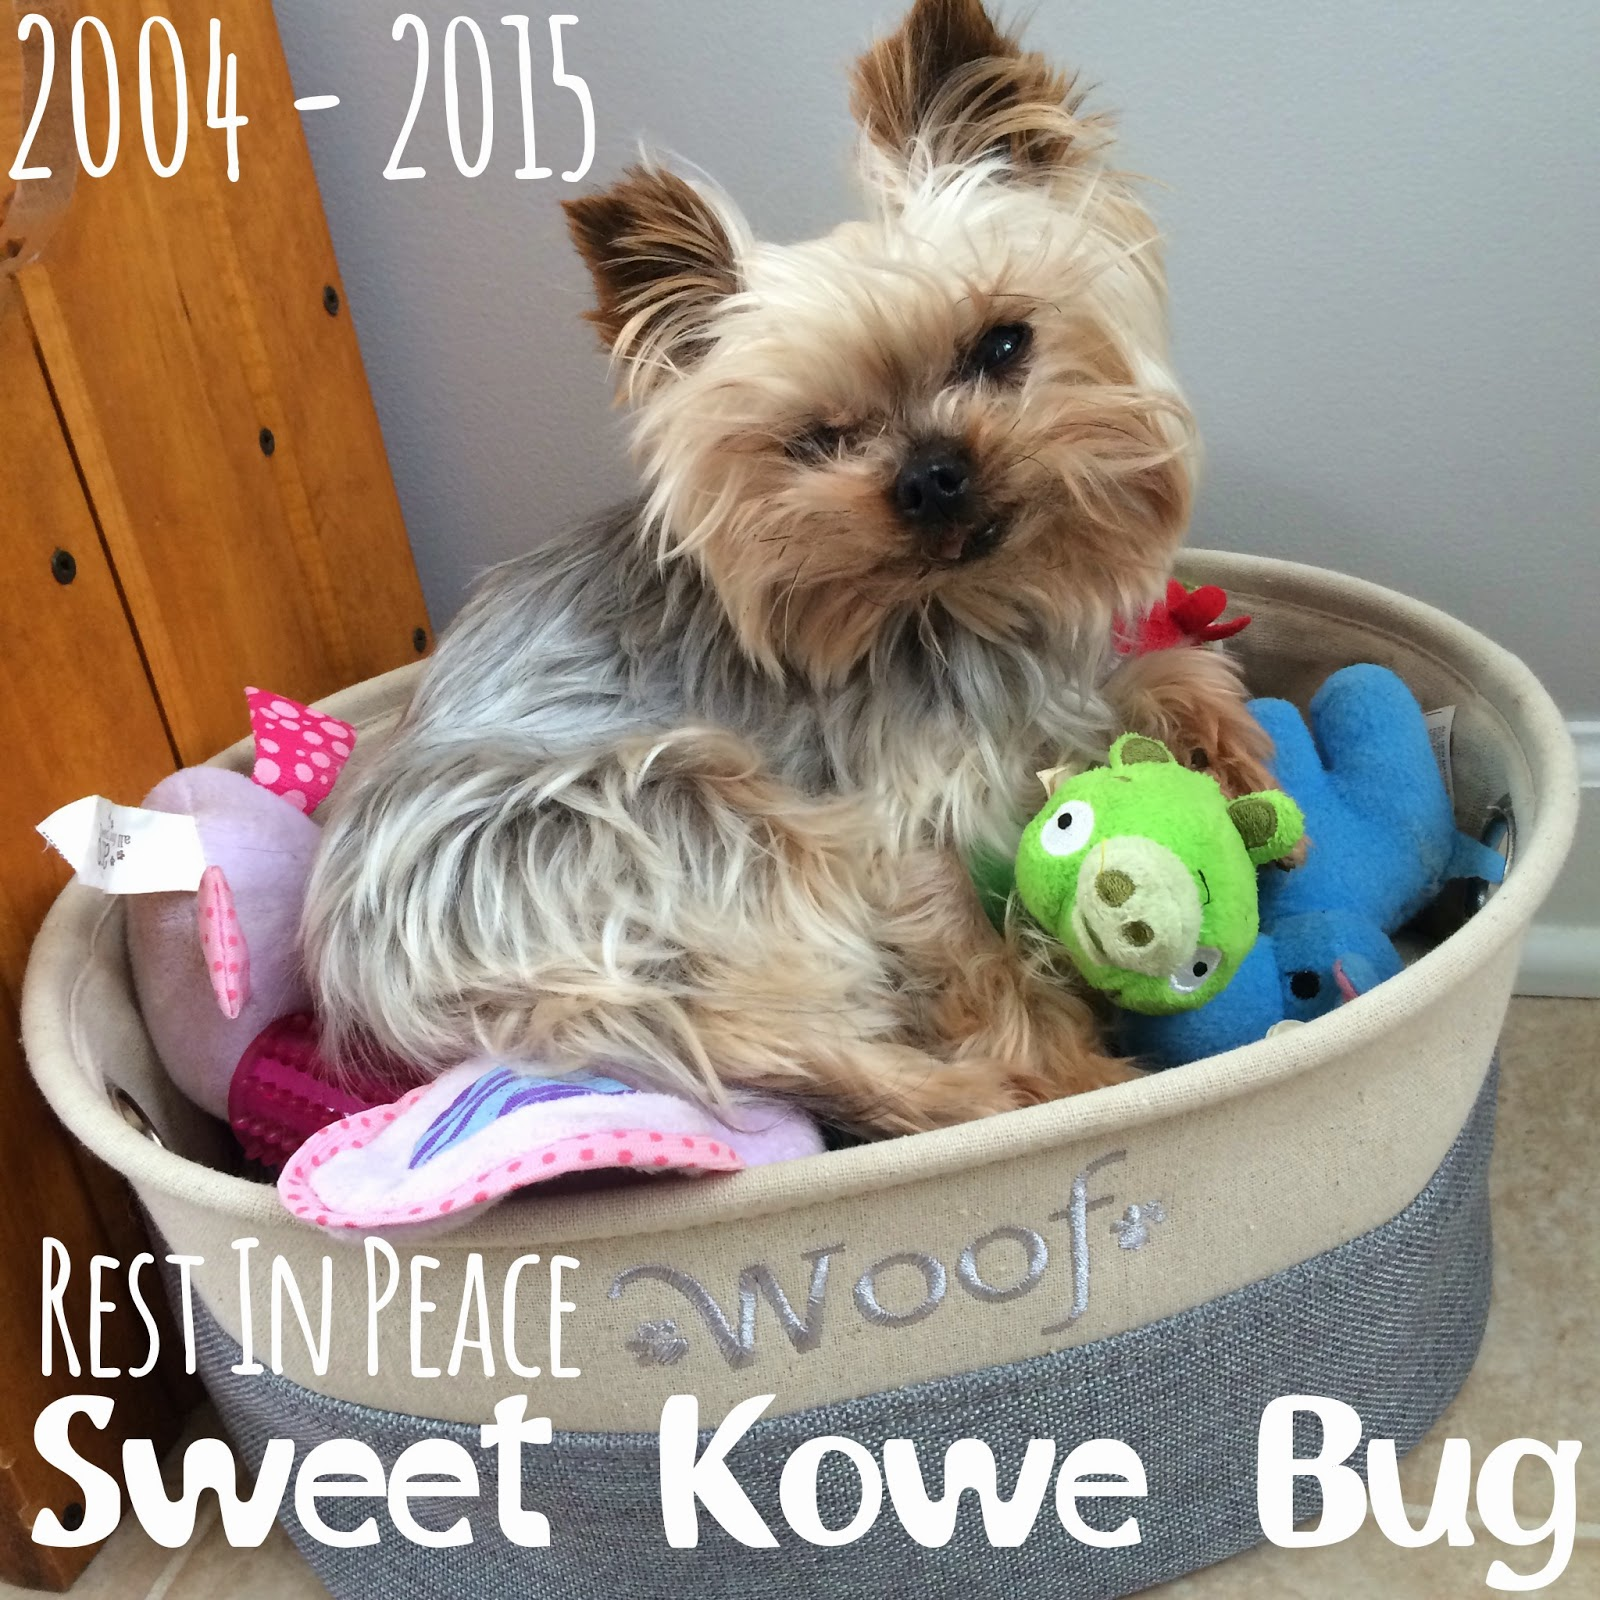 RIP Goodby Kowe Pet Loss